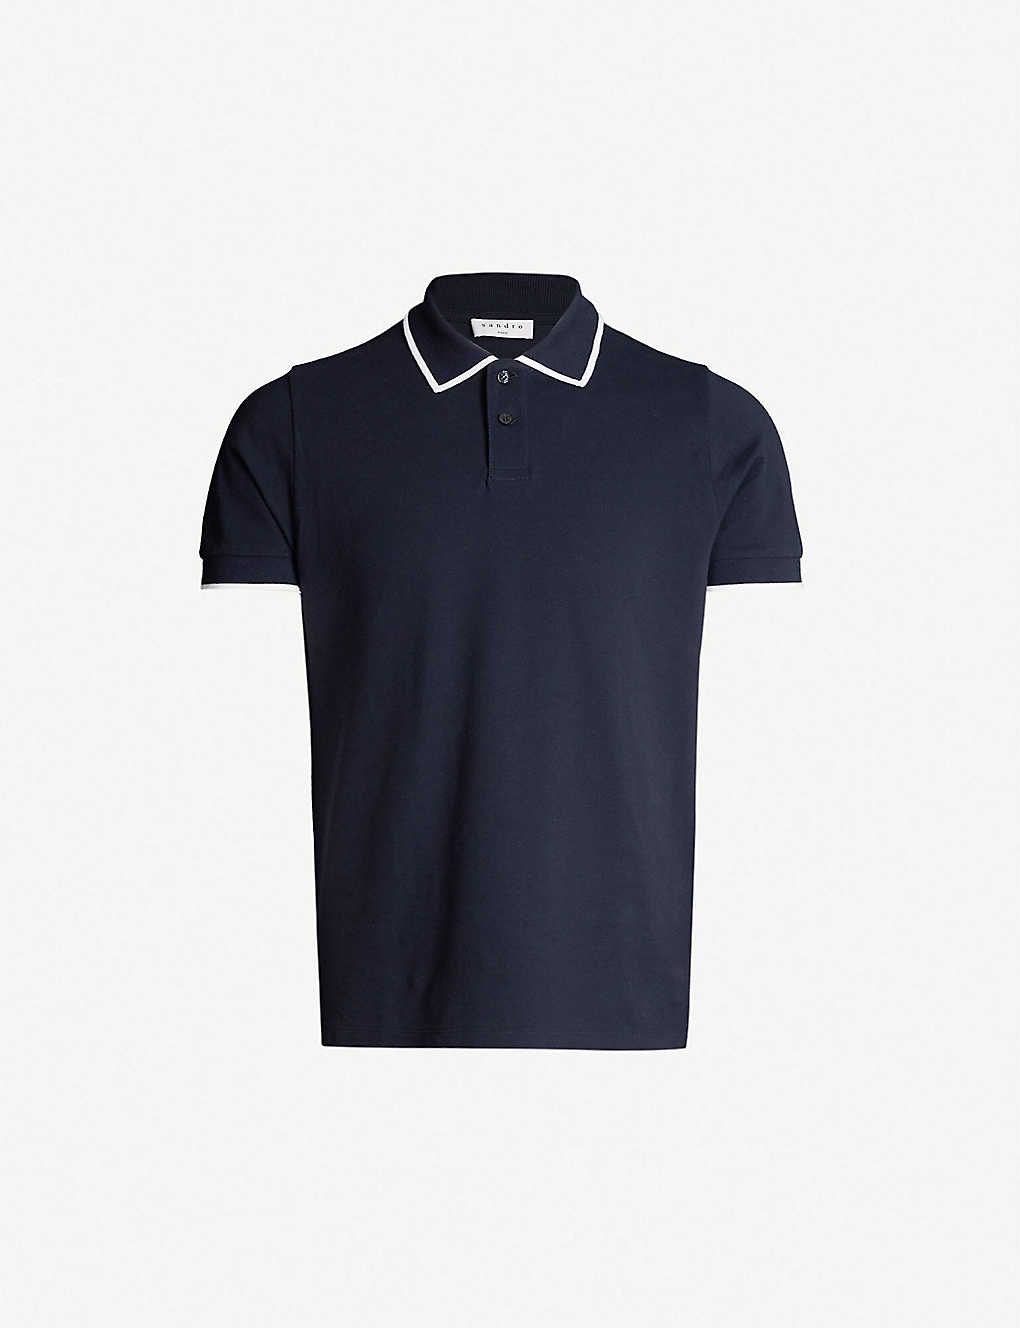 739d8cf8 SANDRO - Contrast trim collar cotton-piqué polo shirt | Selfridges.com